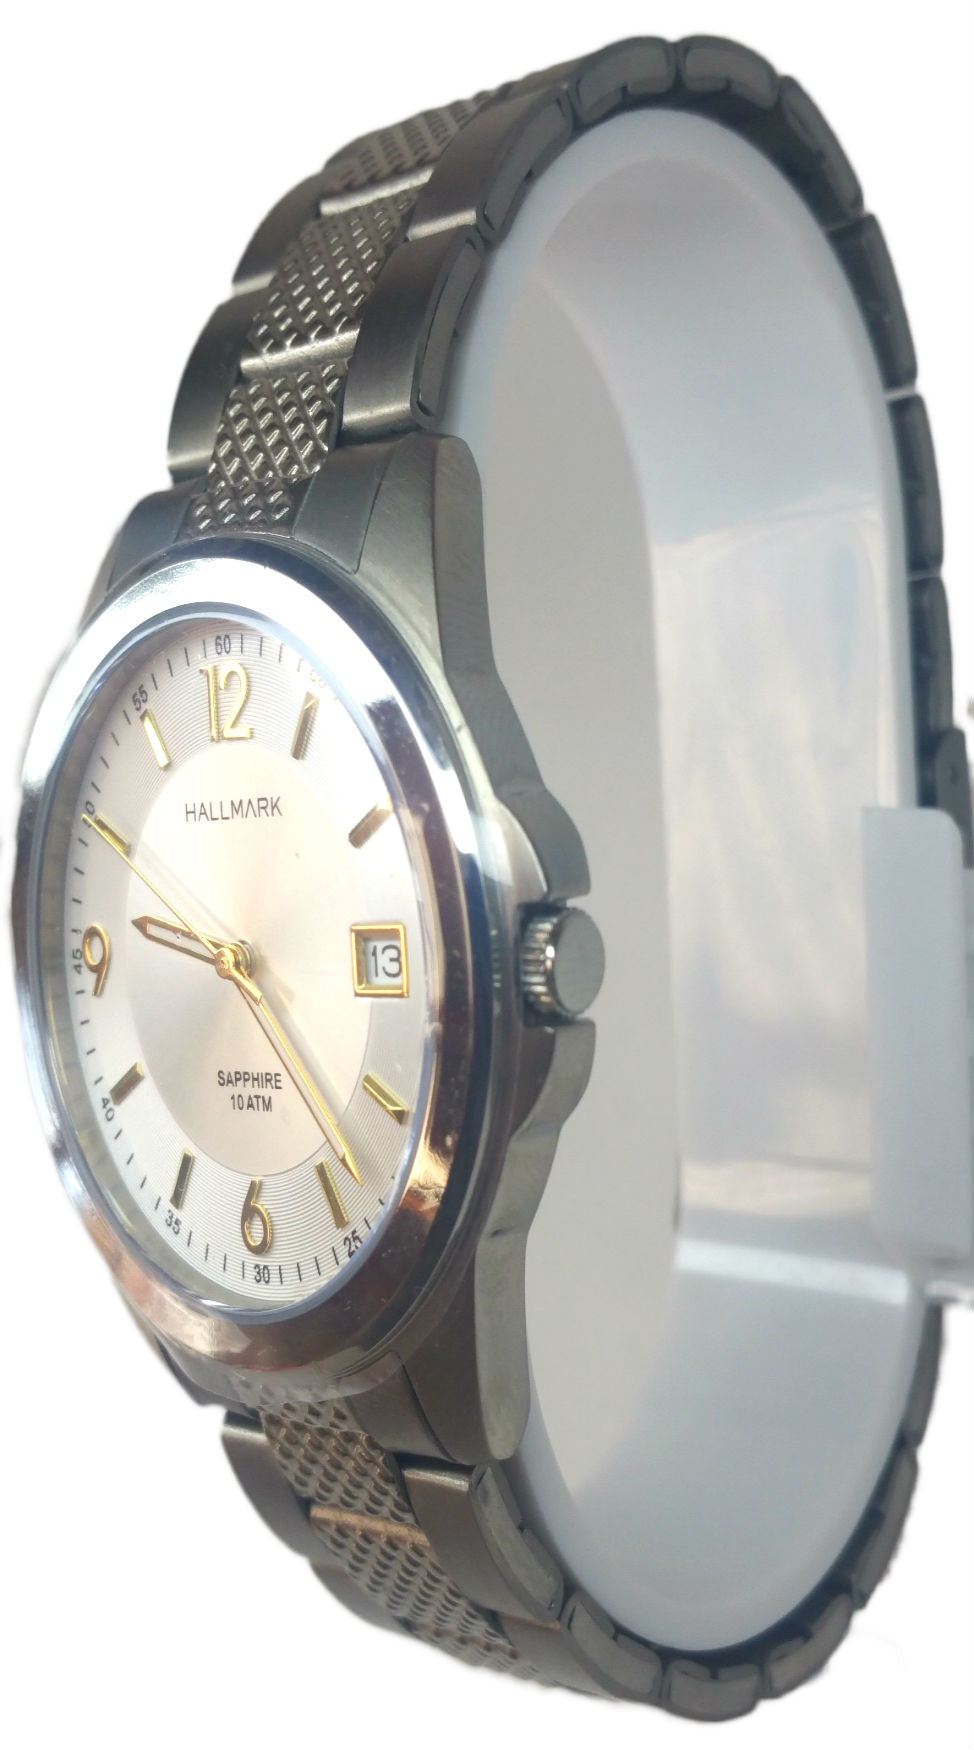 Elegant Day/Date Analog Watch - Silver